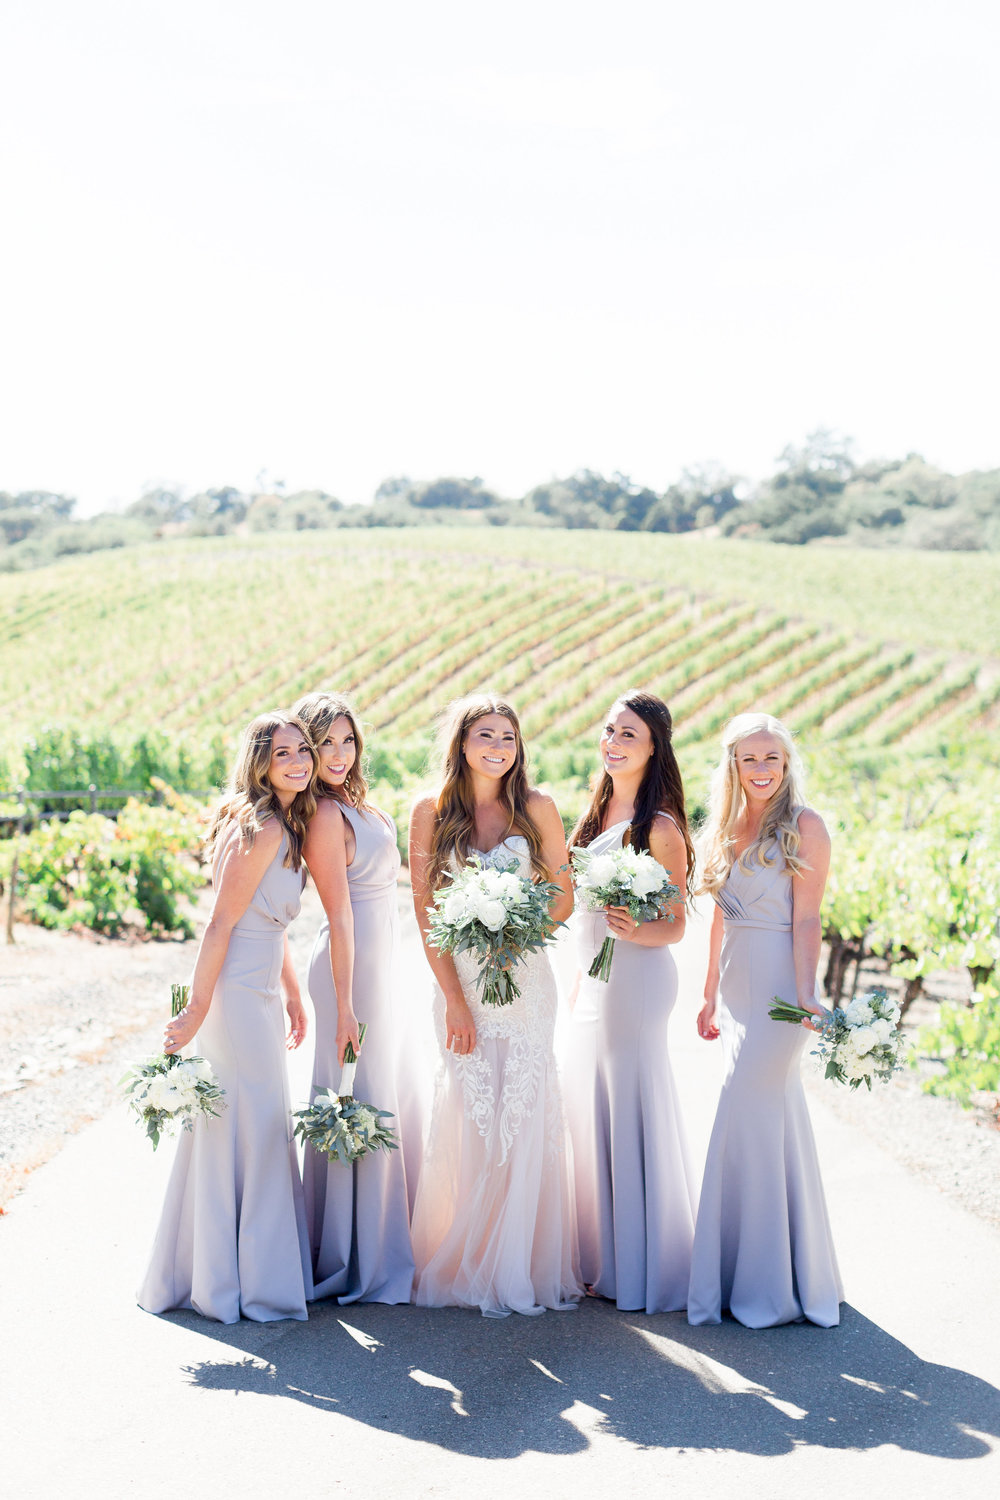 bridesmaids-photo-in-vineyards-at-Calegari-Vineyards-Healdsburg.jpg